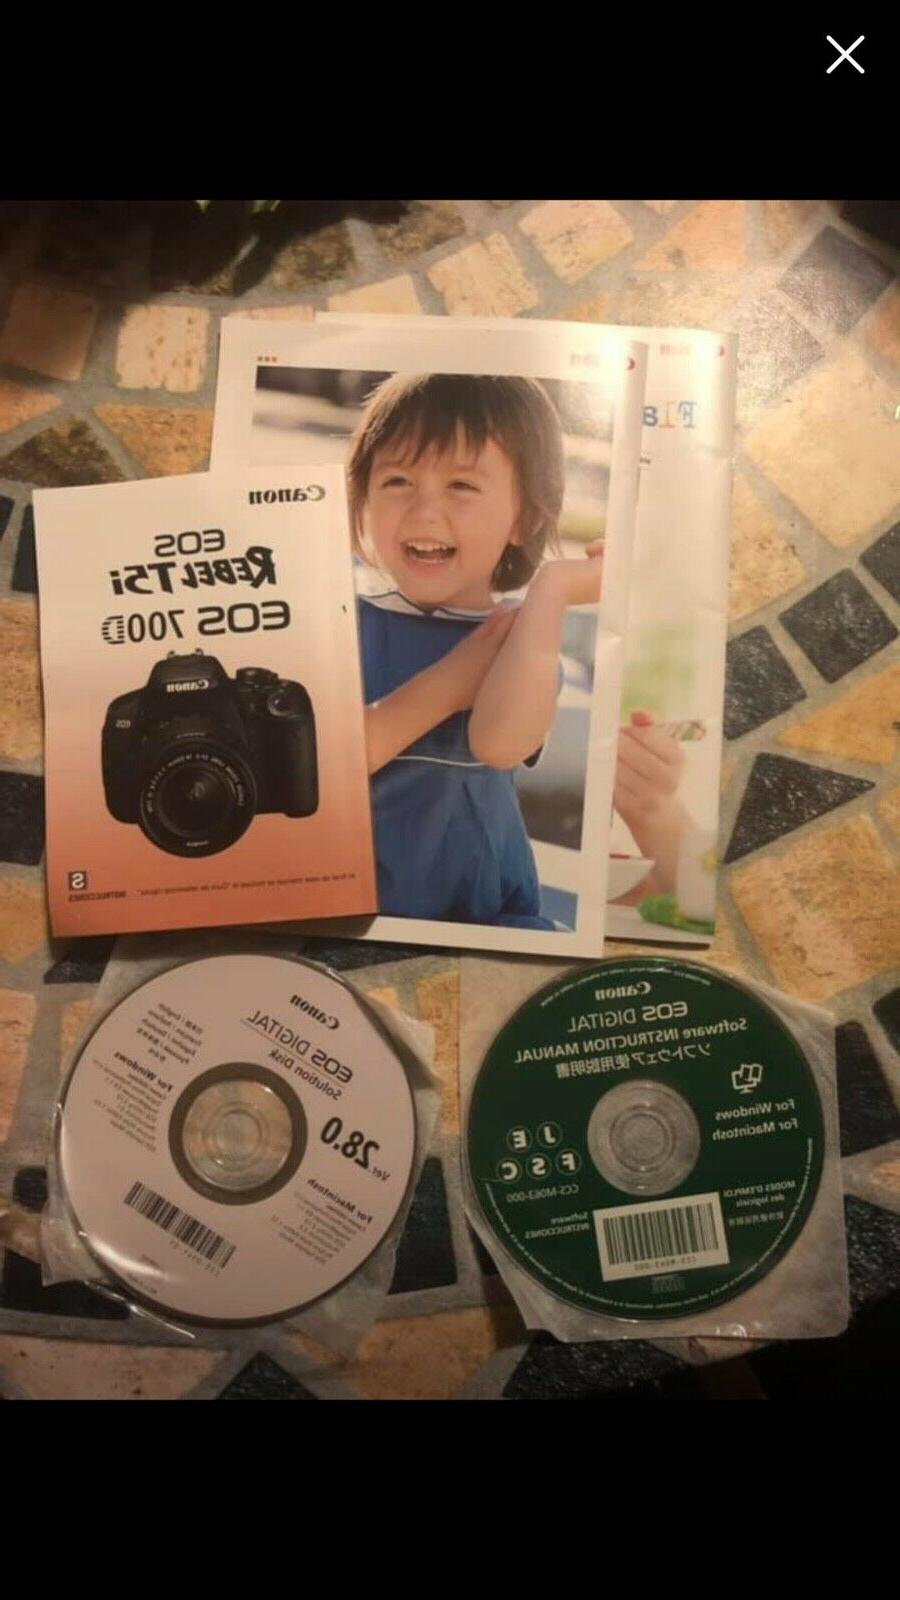 Canon Rebel T5i Camera With Booklet